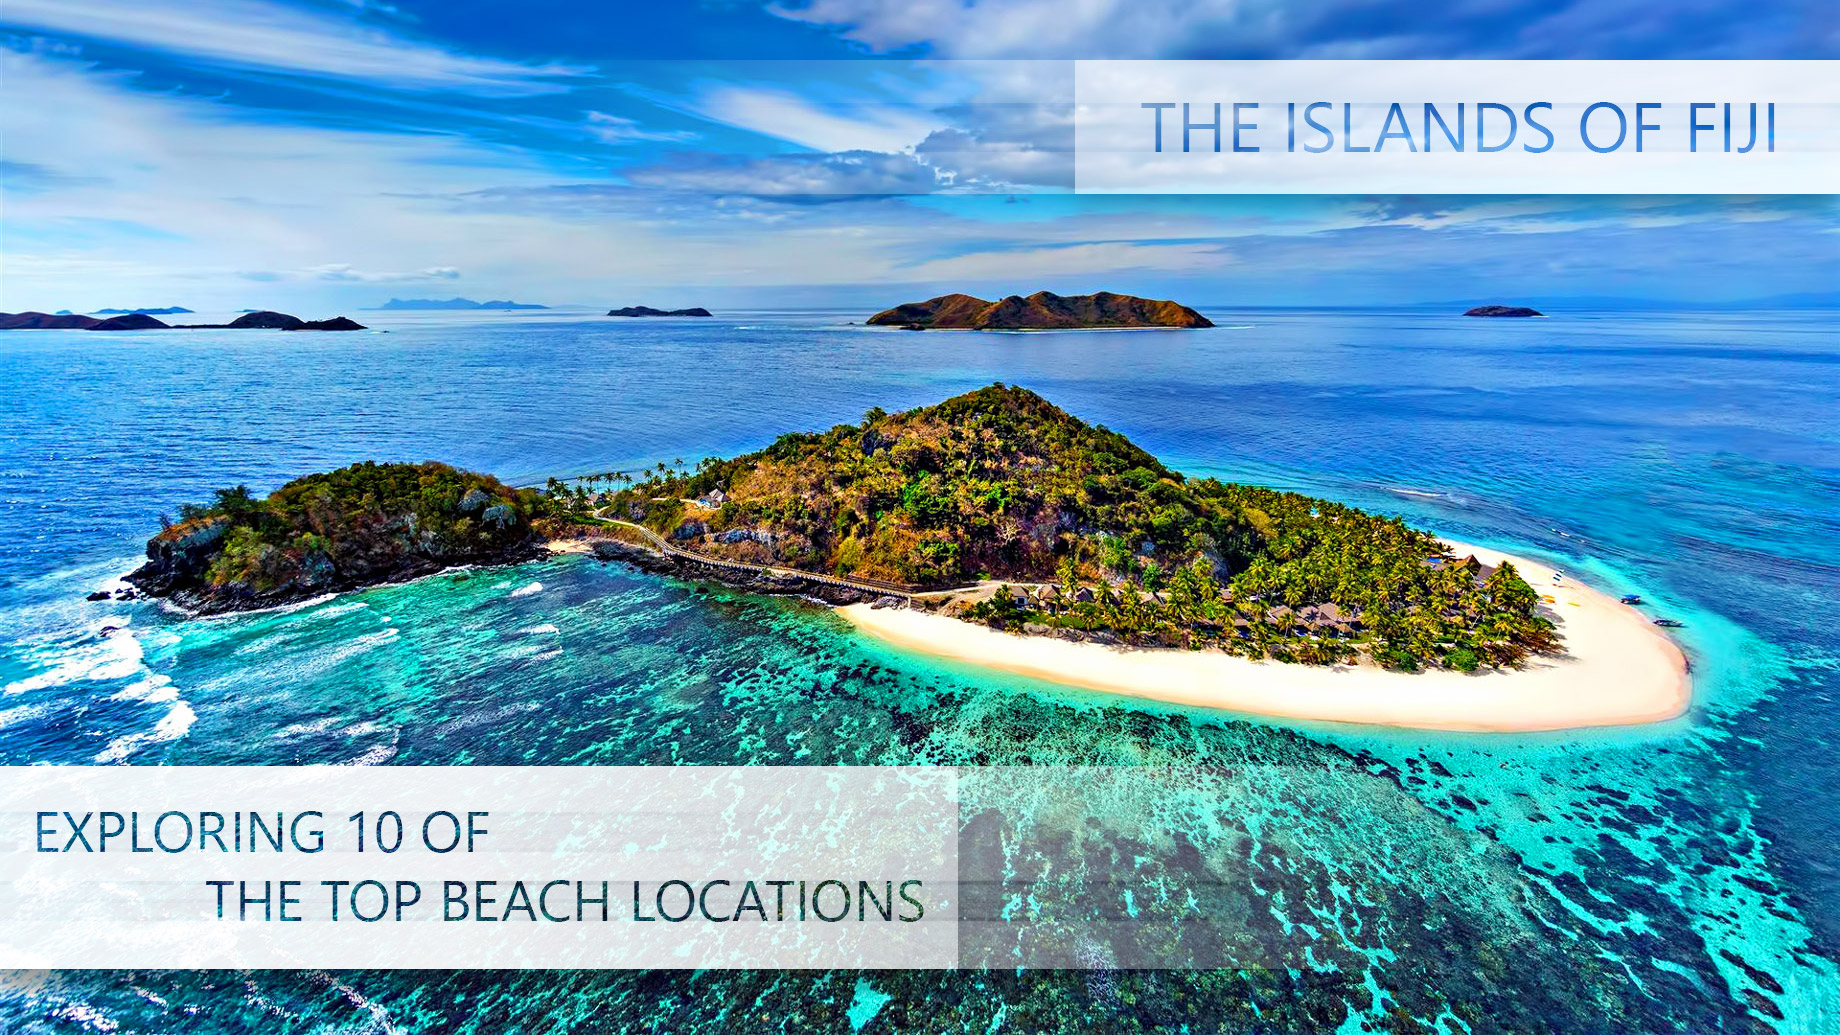 Exploring 10 of the Top Beach Locations on the Islands of Fiji